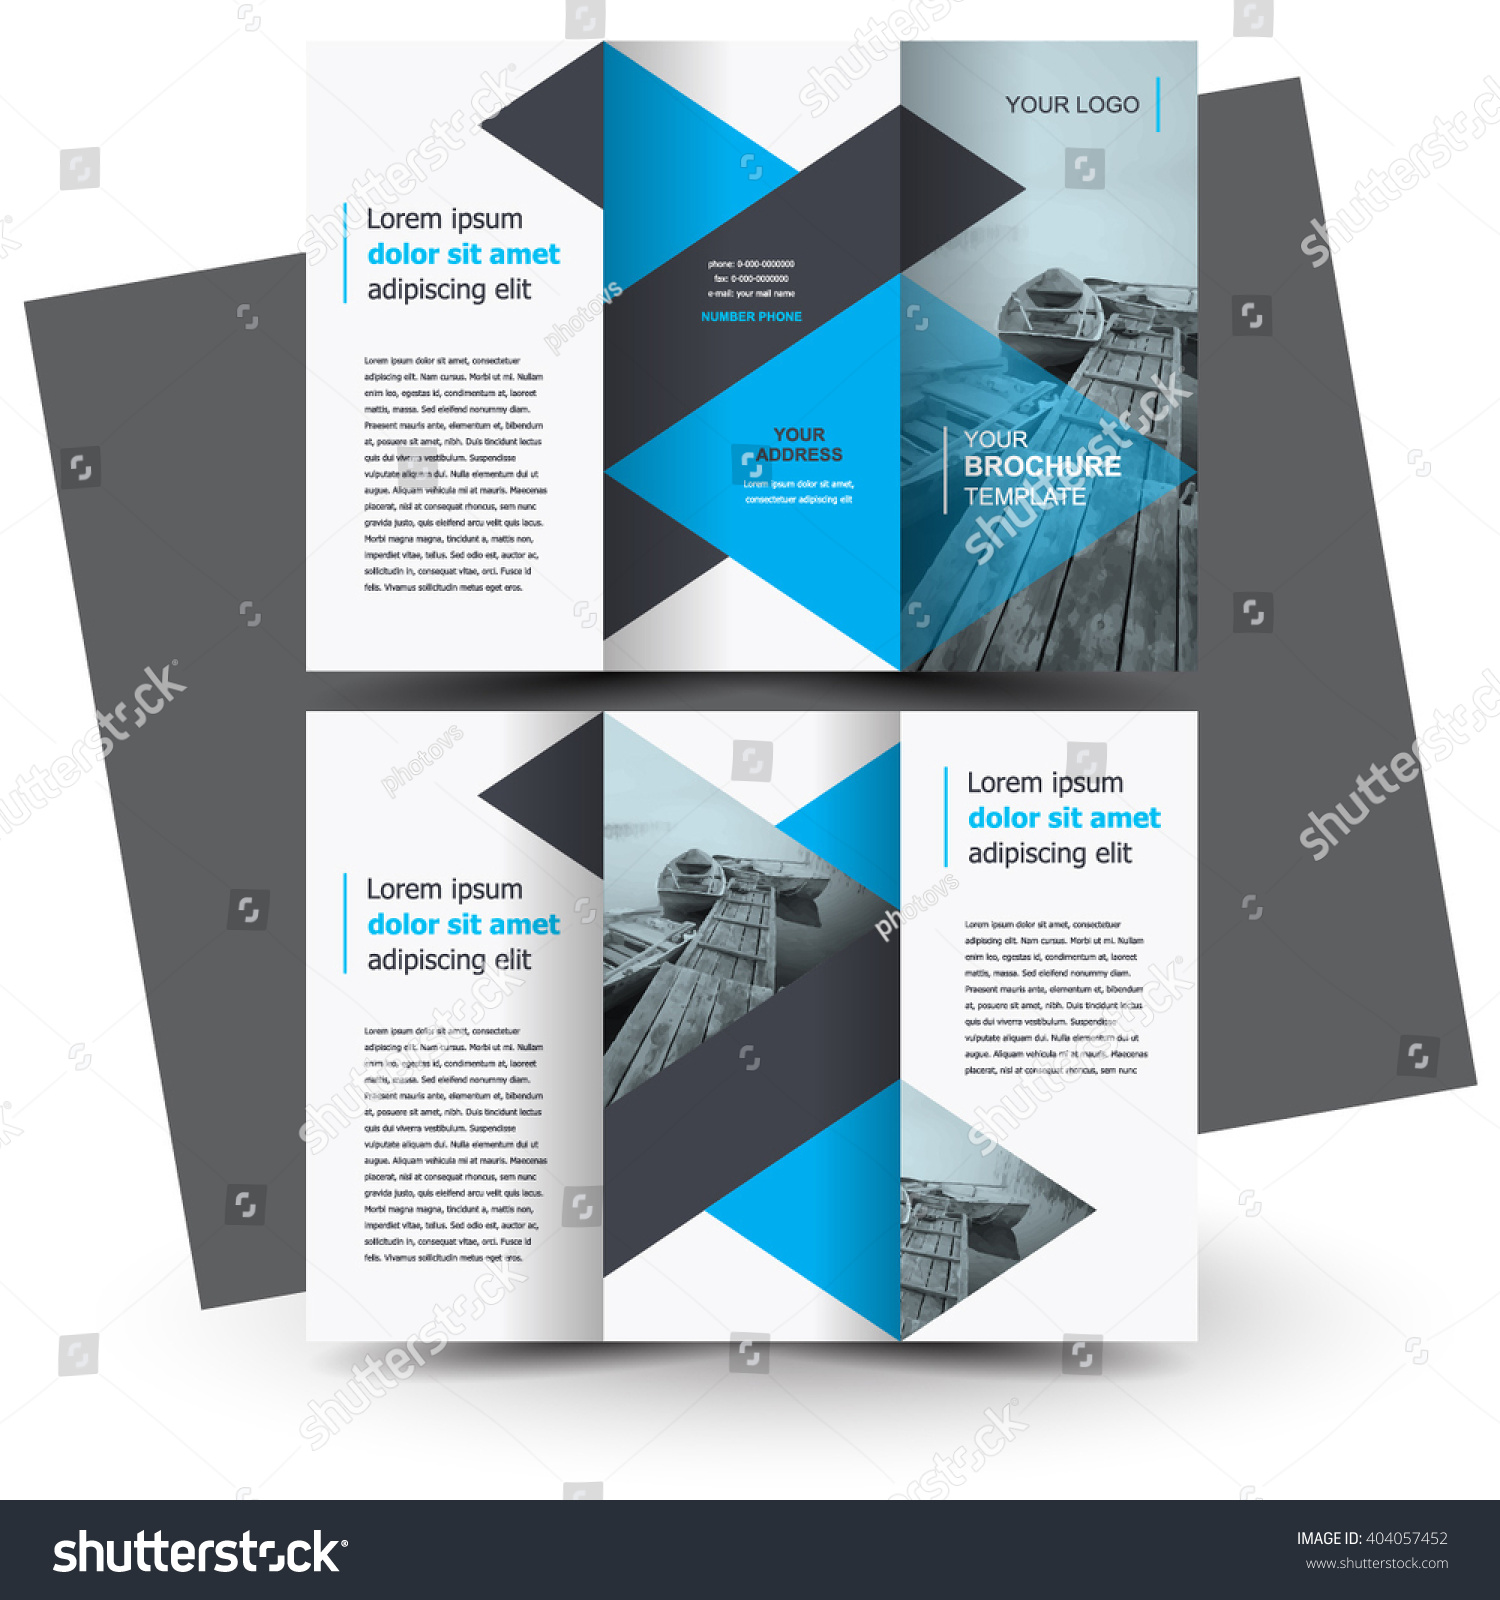 Brochure design brochure template creative trifold stock for Typography brochure design